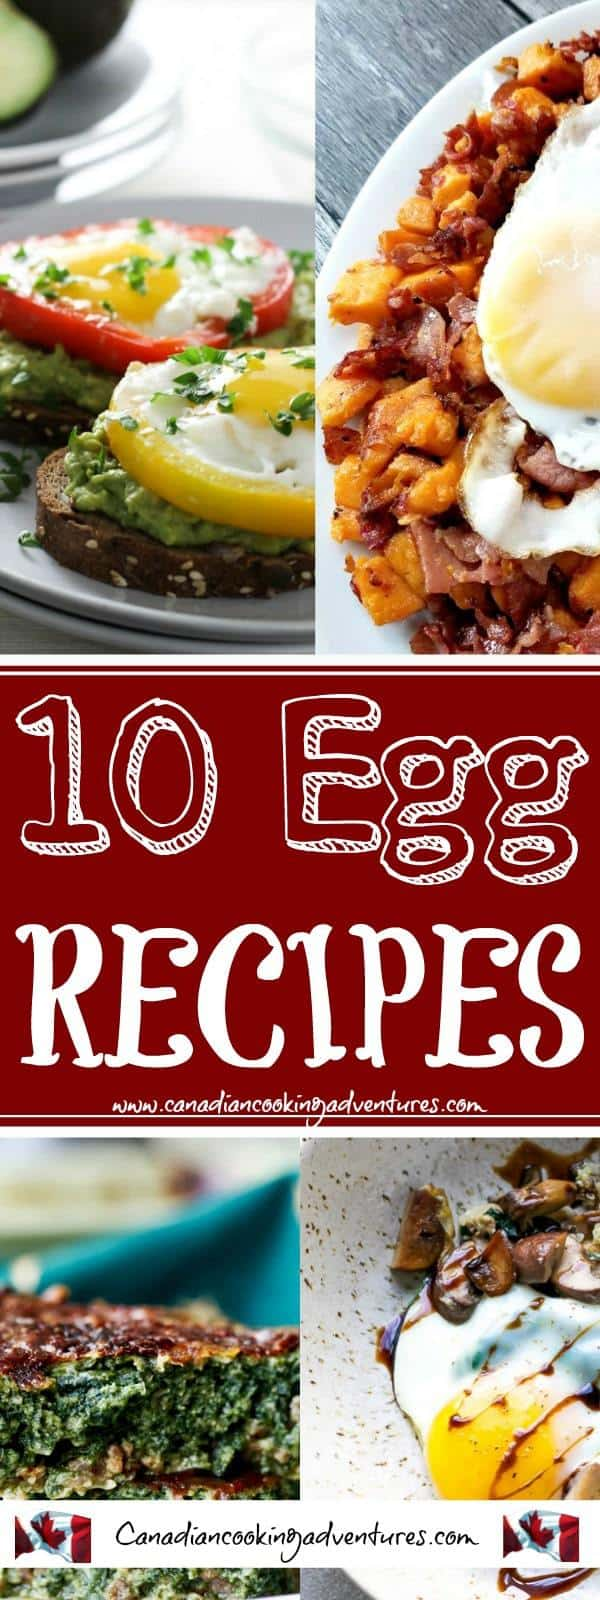 """10 AMAZING EGG RECIPES"" These recipes can be enjoyed any time of the day! Eggs are so versatile! #CANADIANCOOKINGADVENTRES #Breakfast #Lunch #Dinner #eggs #egg #Recipes #breakfastrecipes #foodnetwork #avocado #avocados #sweetpotato"